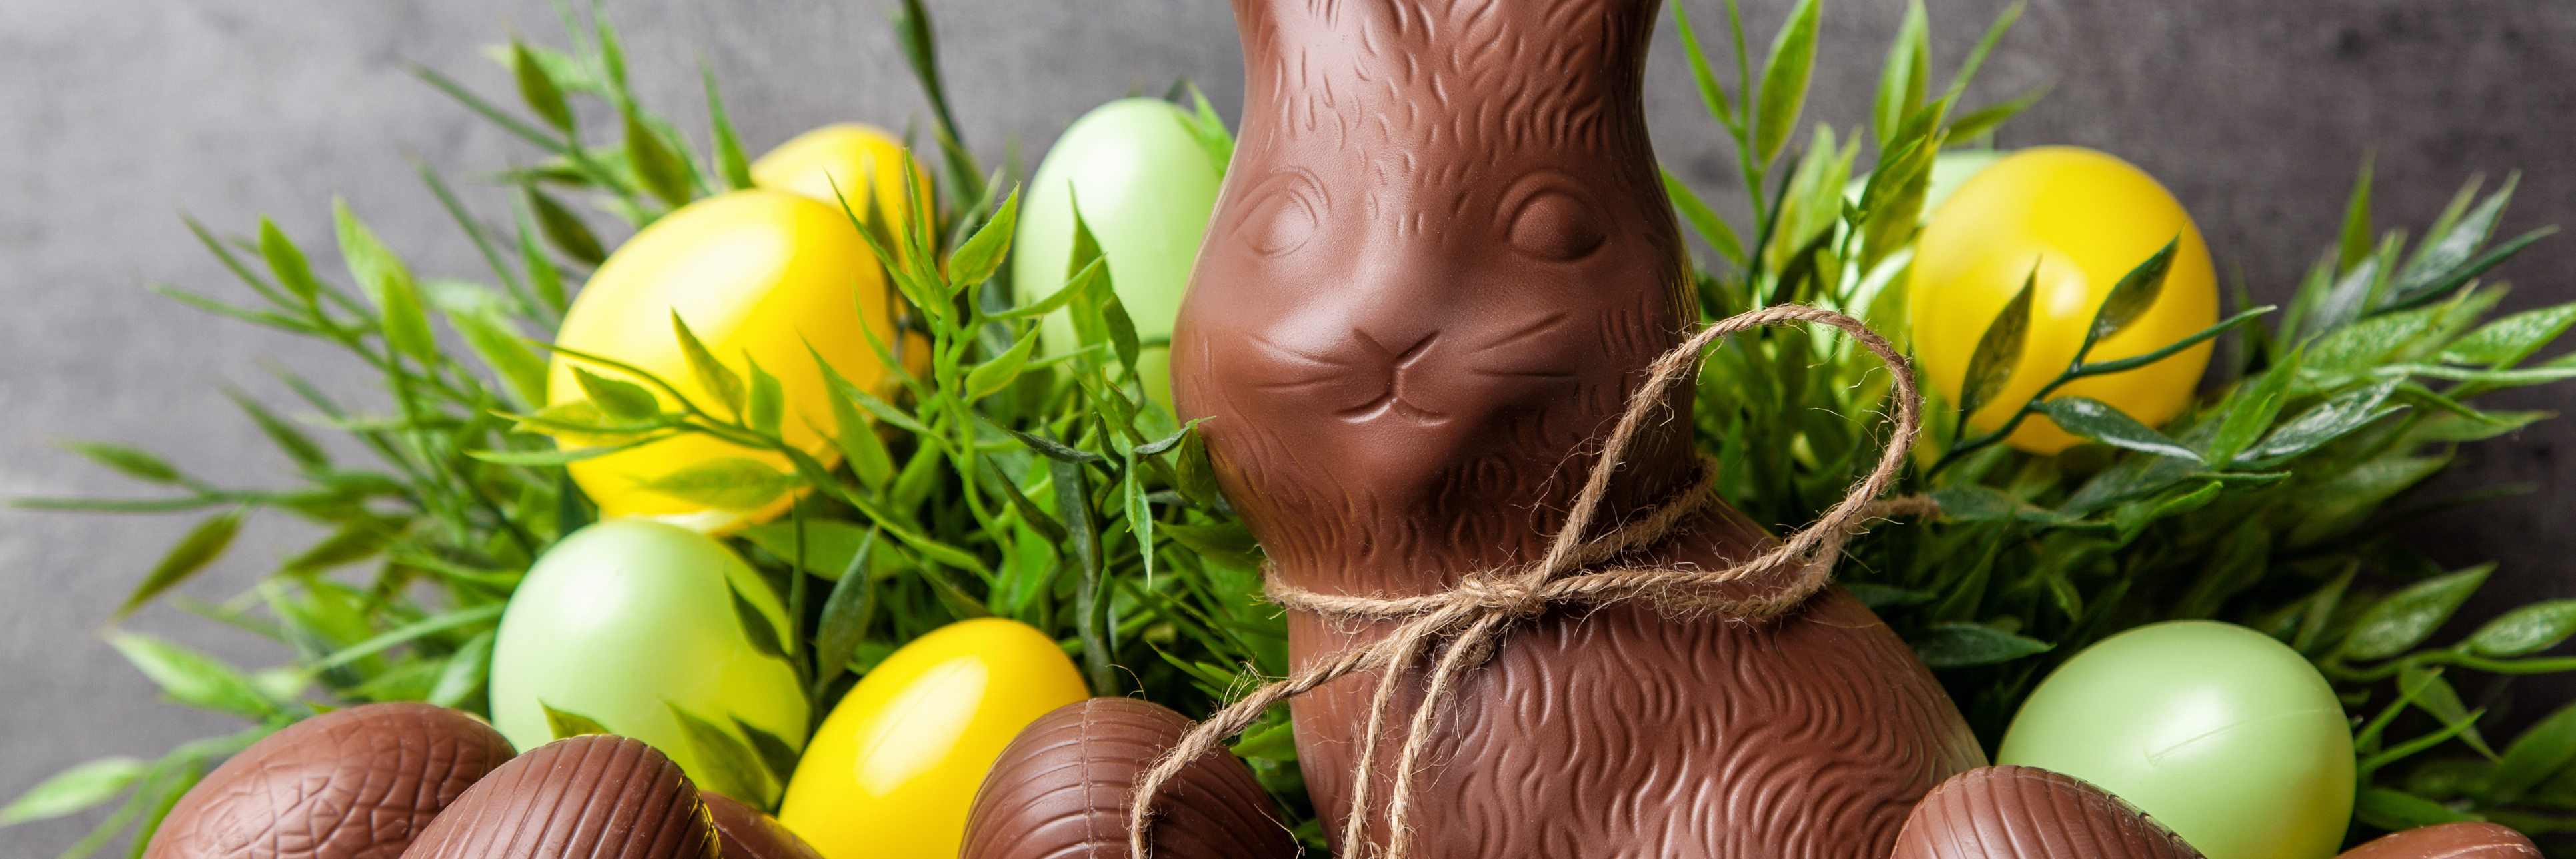 traditional chocolate easter bunny surrounded by easter eggs with string tied into a bow around neck